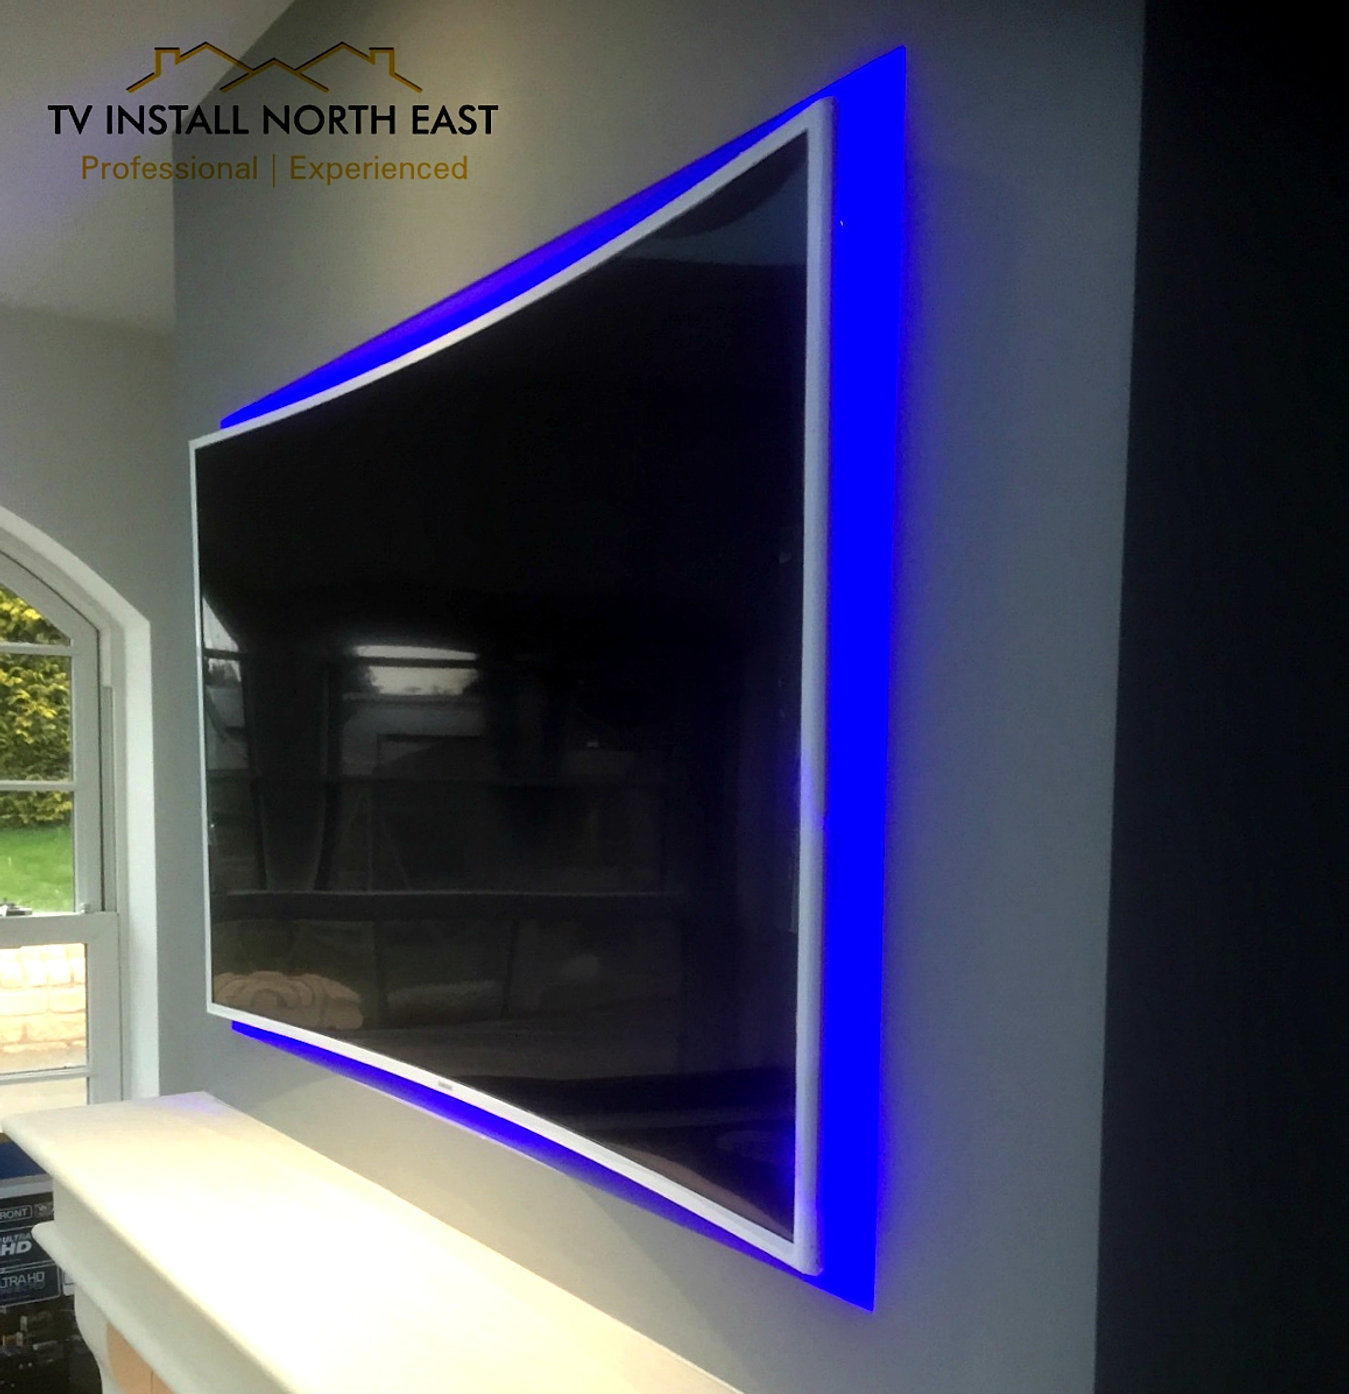 Gallery additionally Index moreover Cherry Floating Shelves likewise Circular Bar Contemporary Home Bar Other Metro together with Sento Floating Vanity Support 181. on led floating shelves